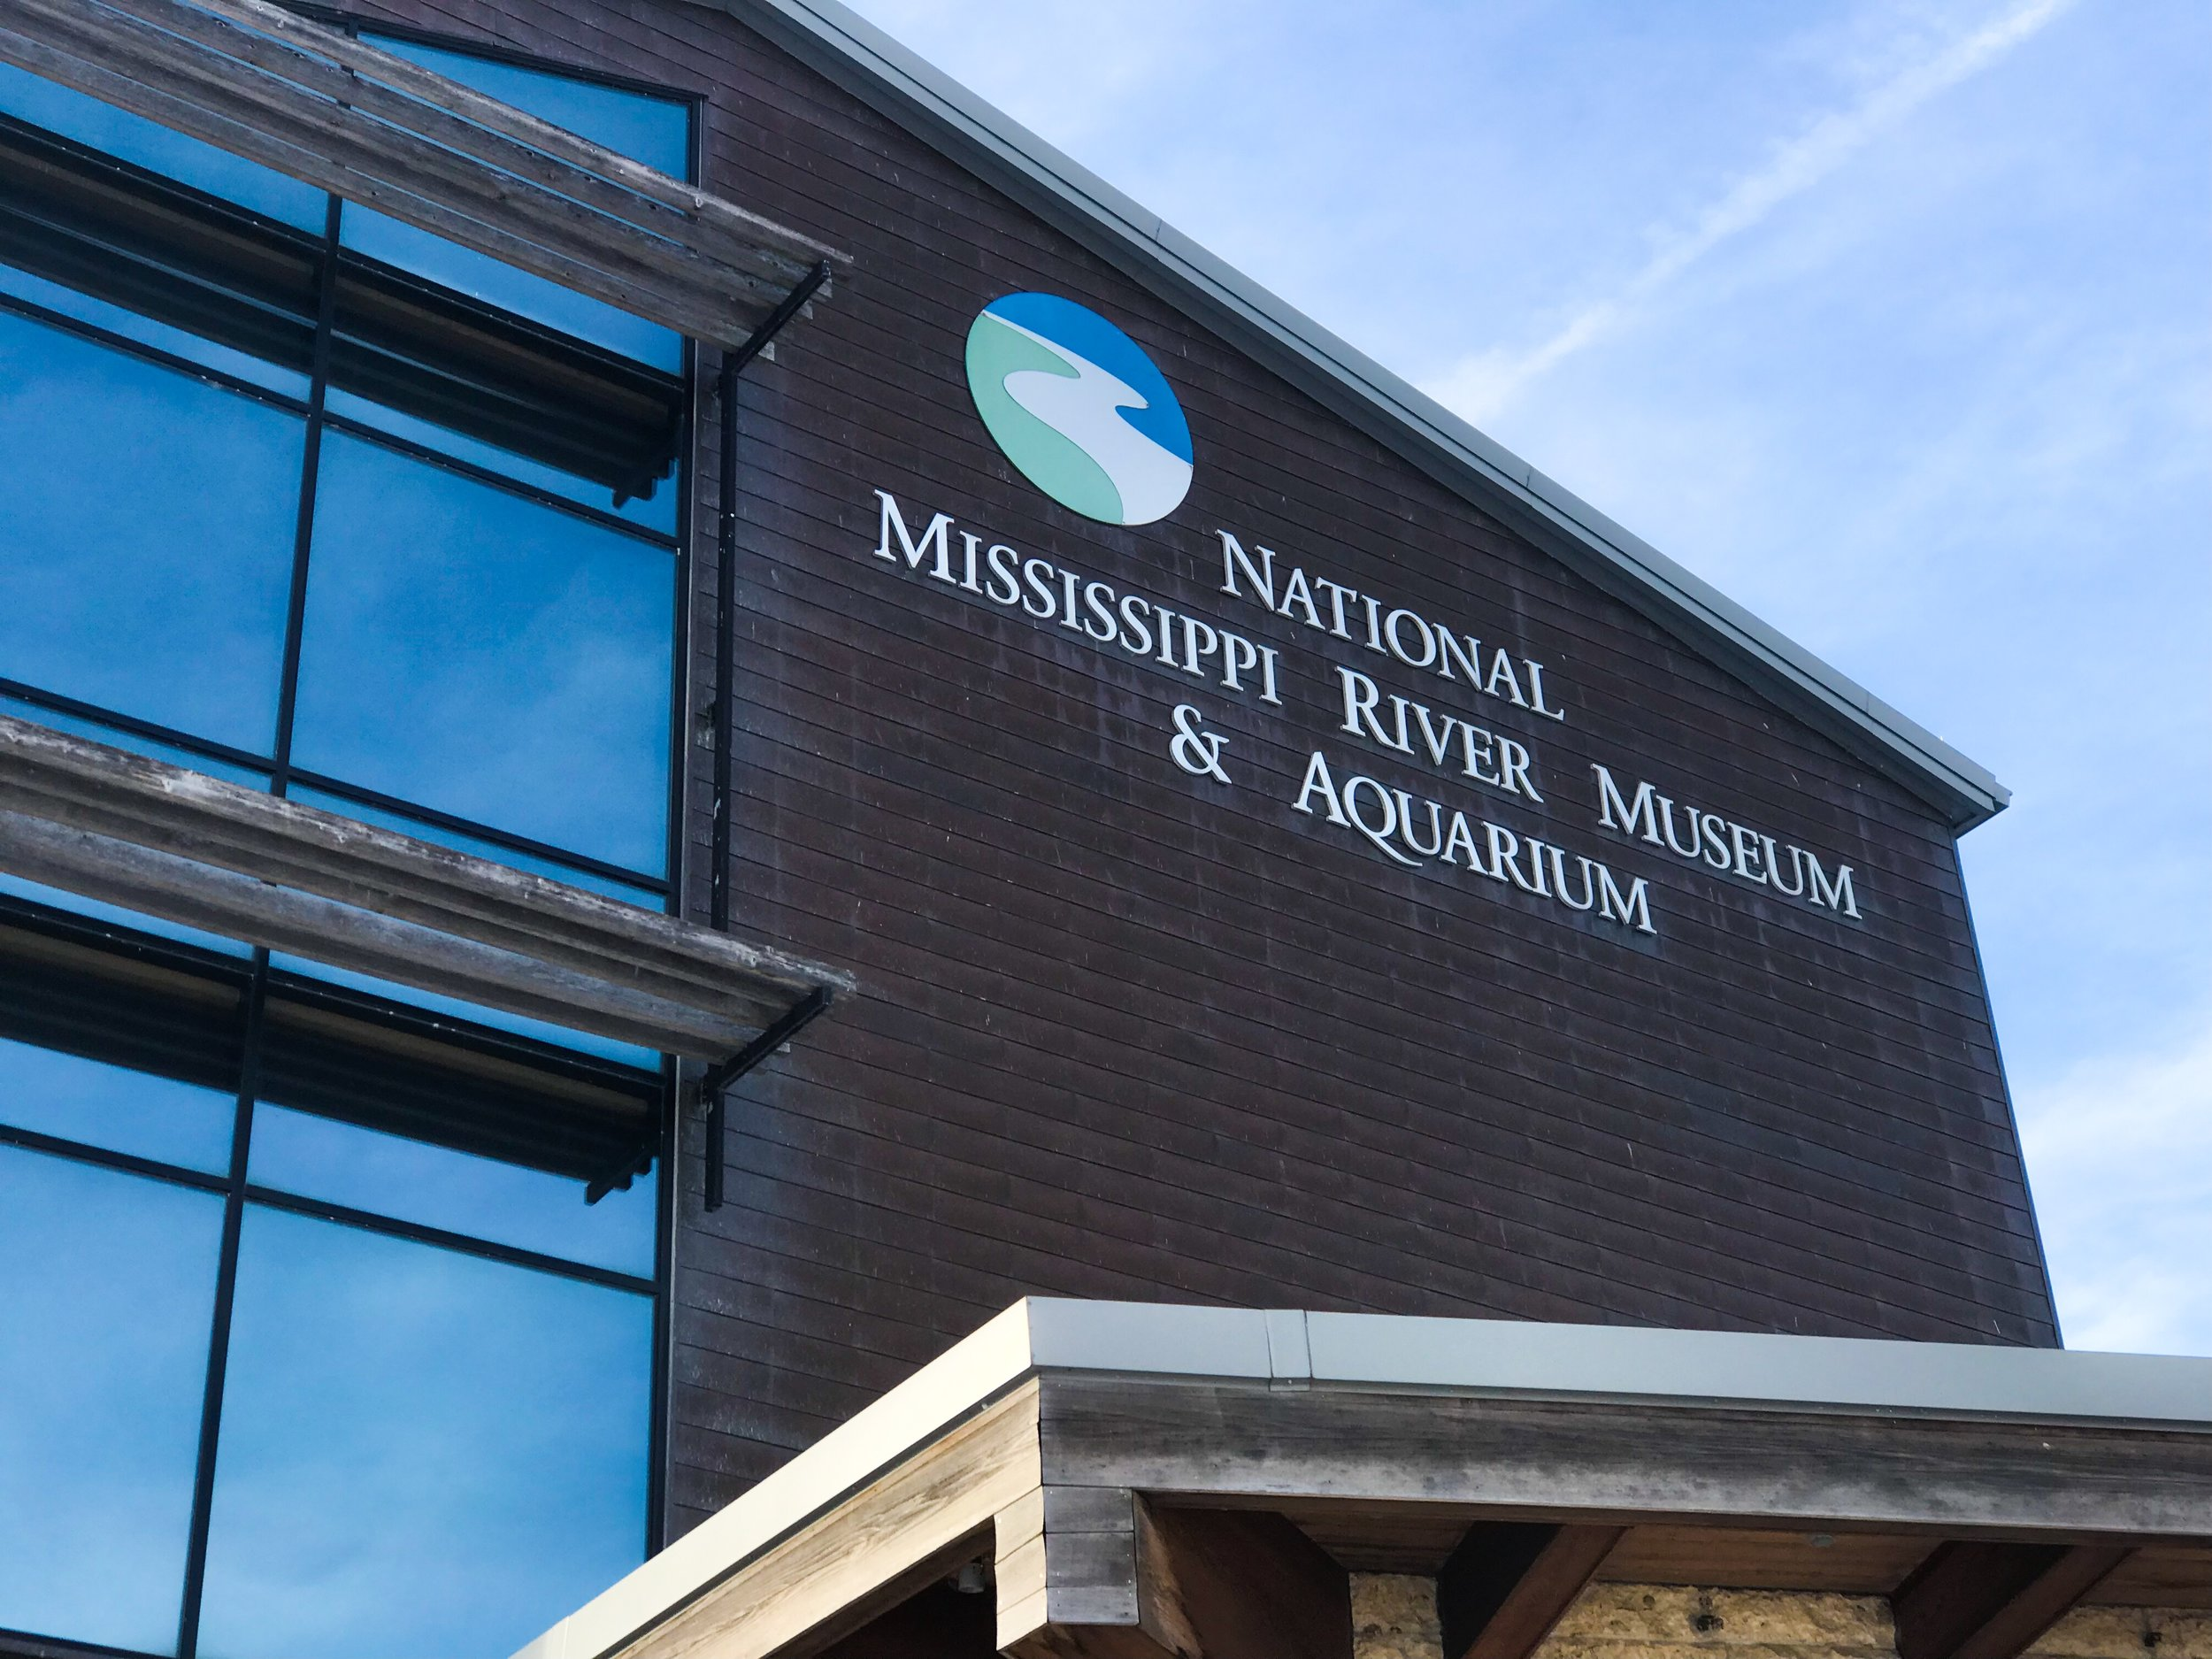 NATIONAL MISSISSIPPI RIVER MUSEUM AND AQUARIUM - Museum and Aquarium exhibiting the culture and history of America's rivers